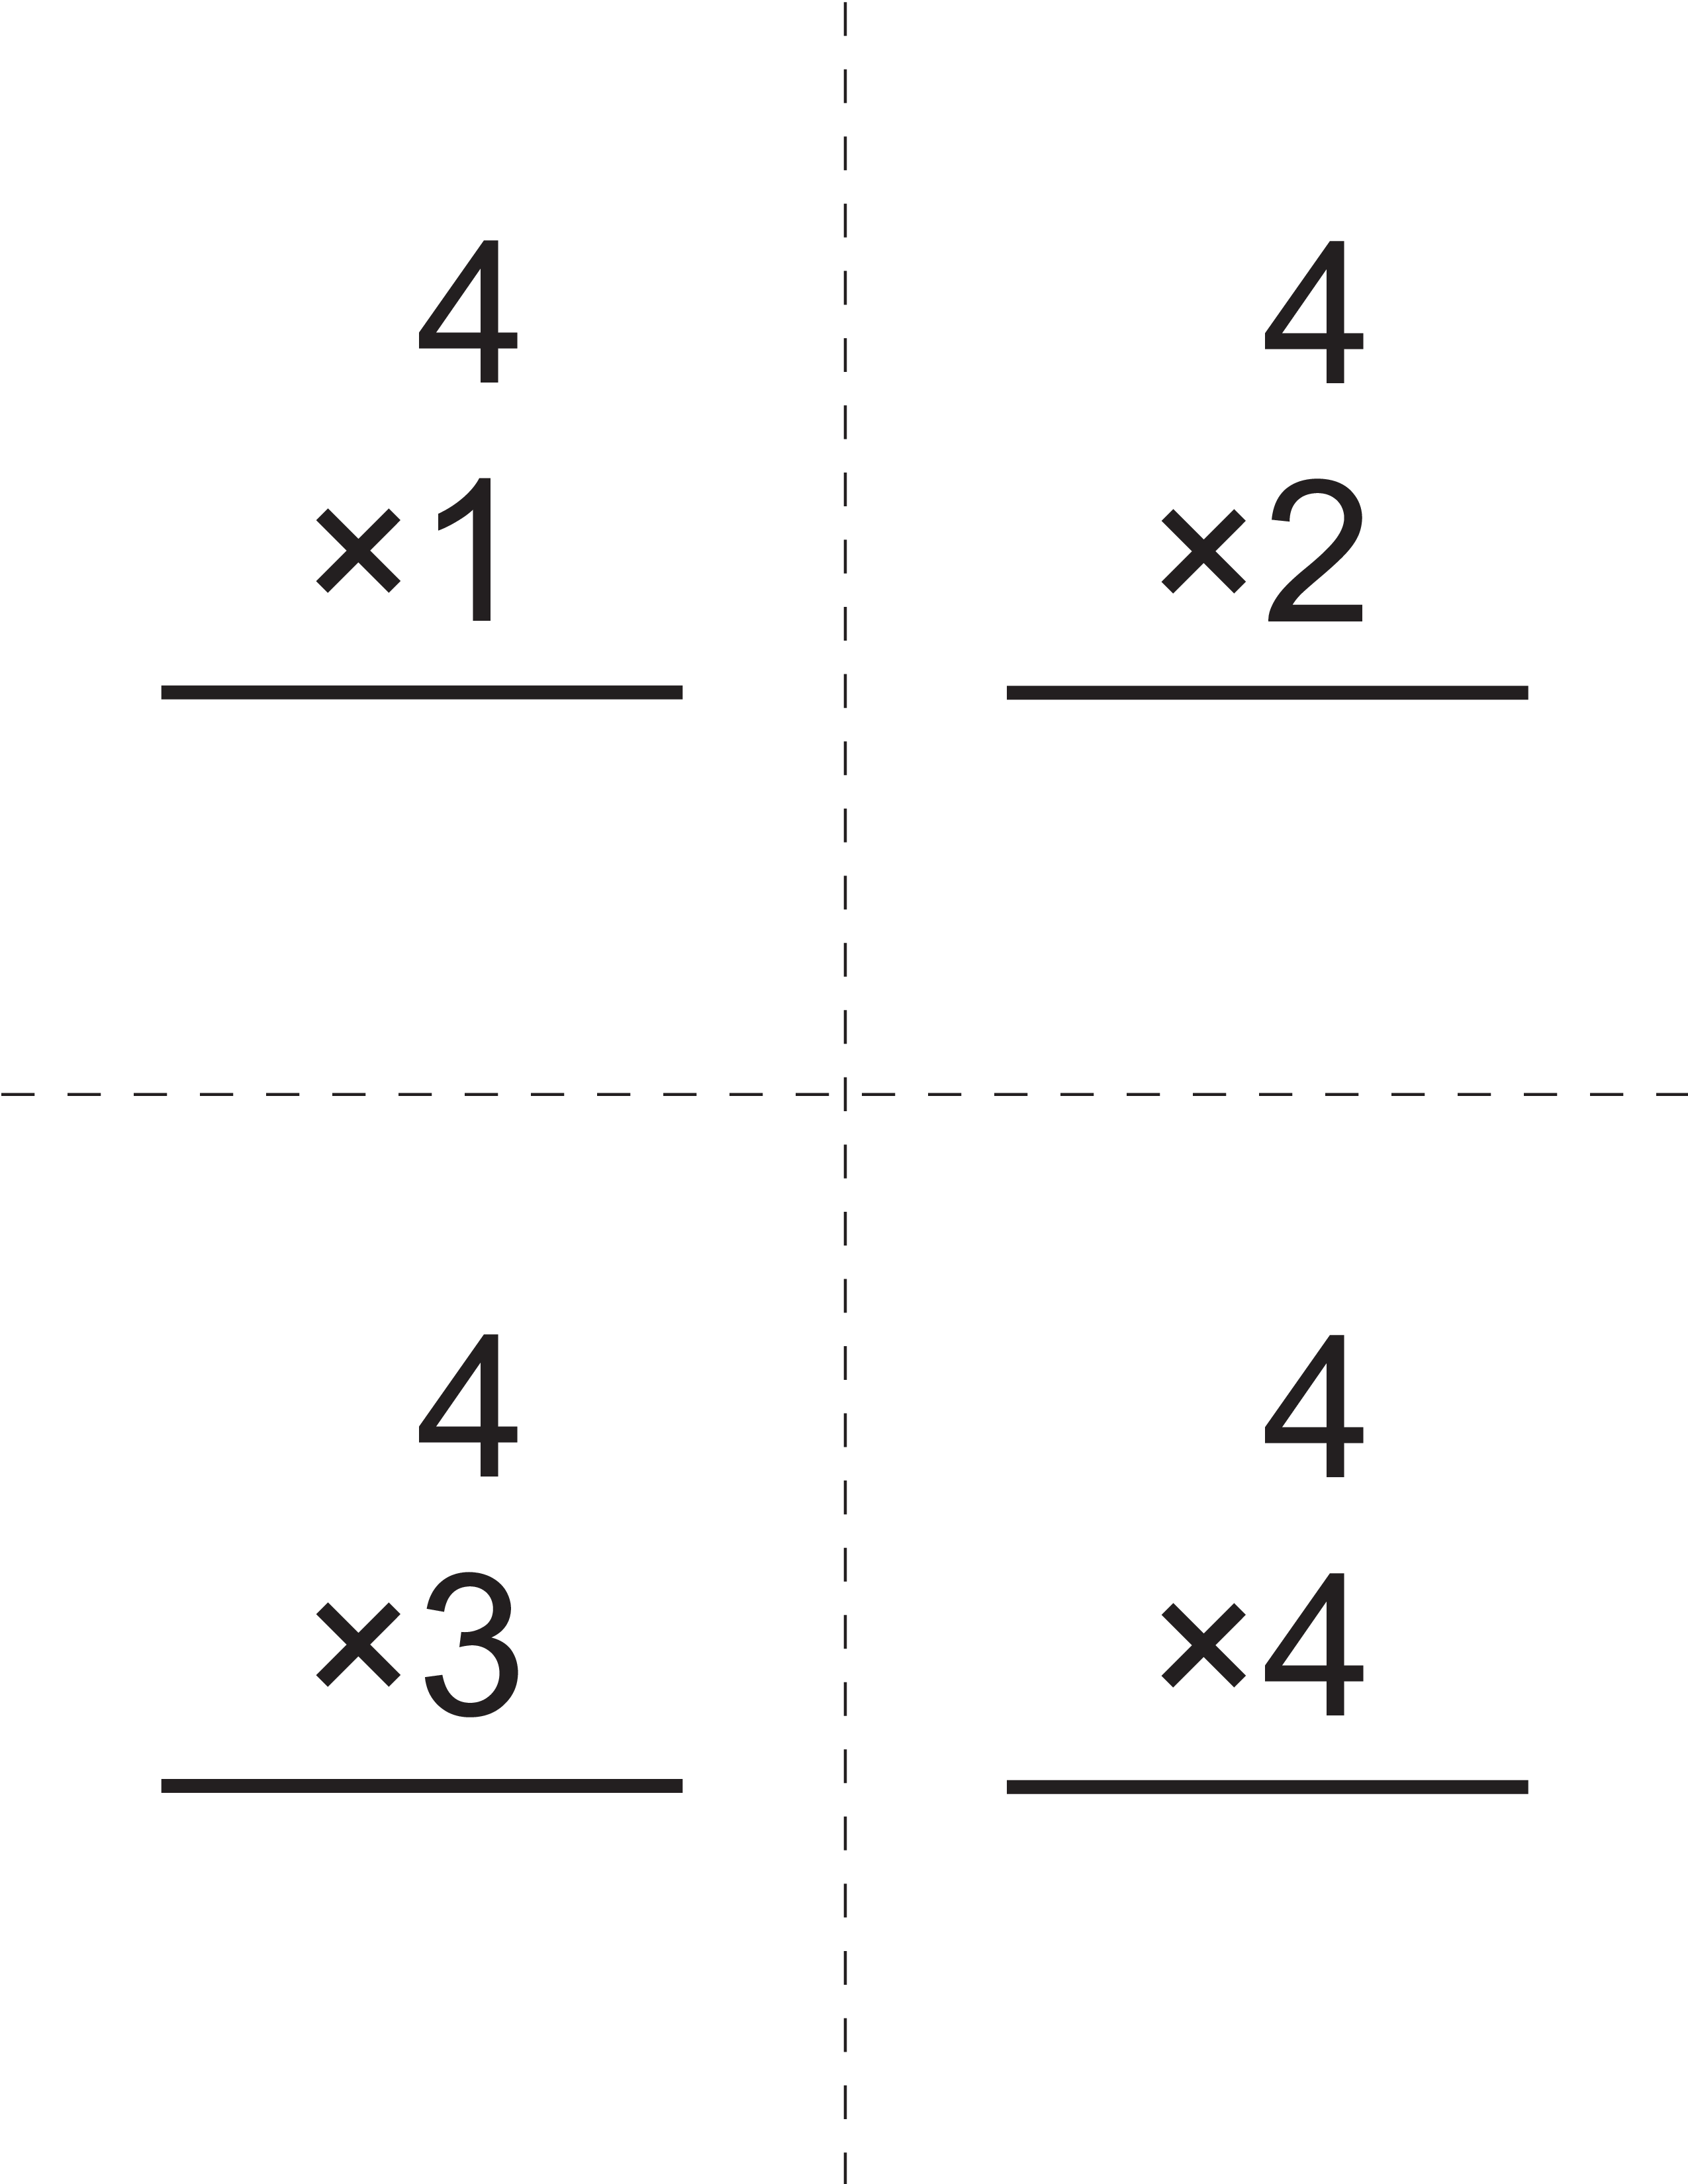 Multiplication Times 4 Flashcards Main Image Template